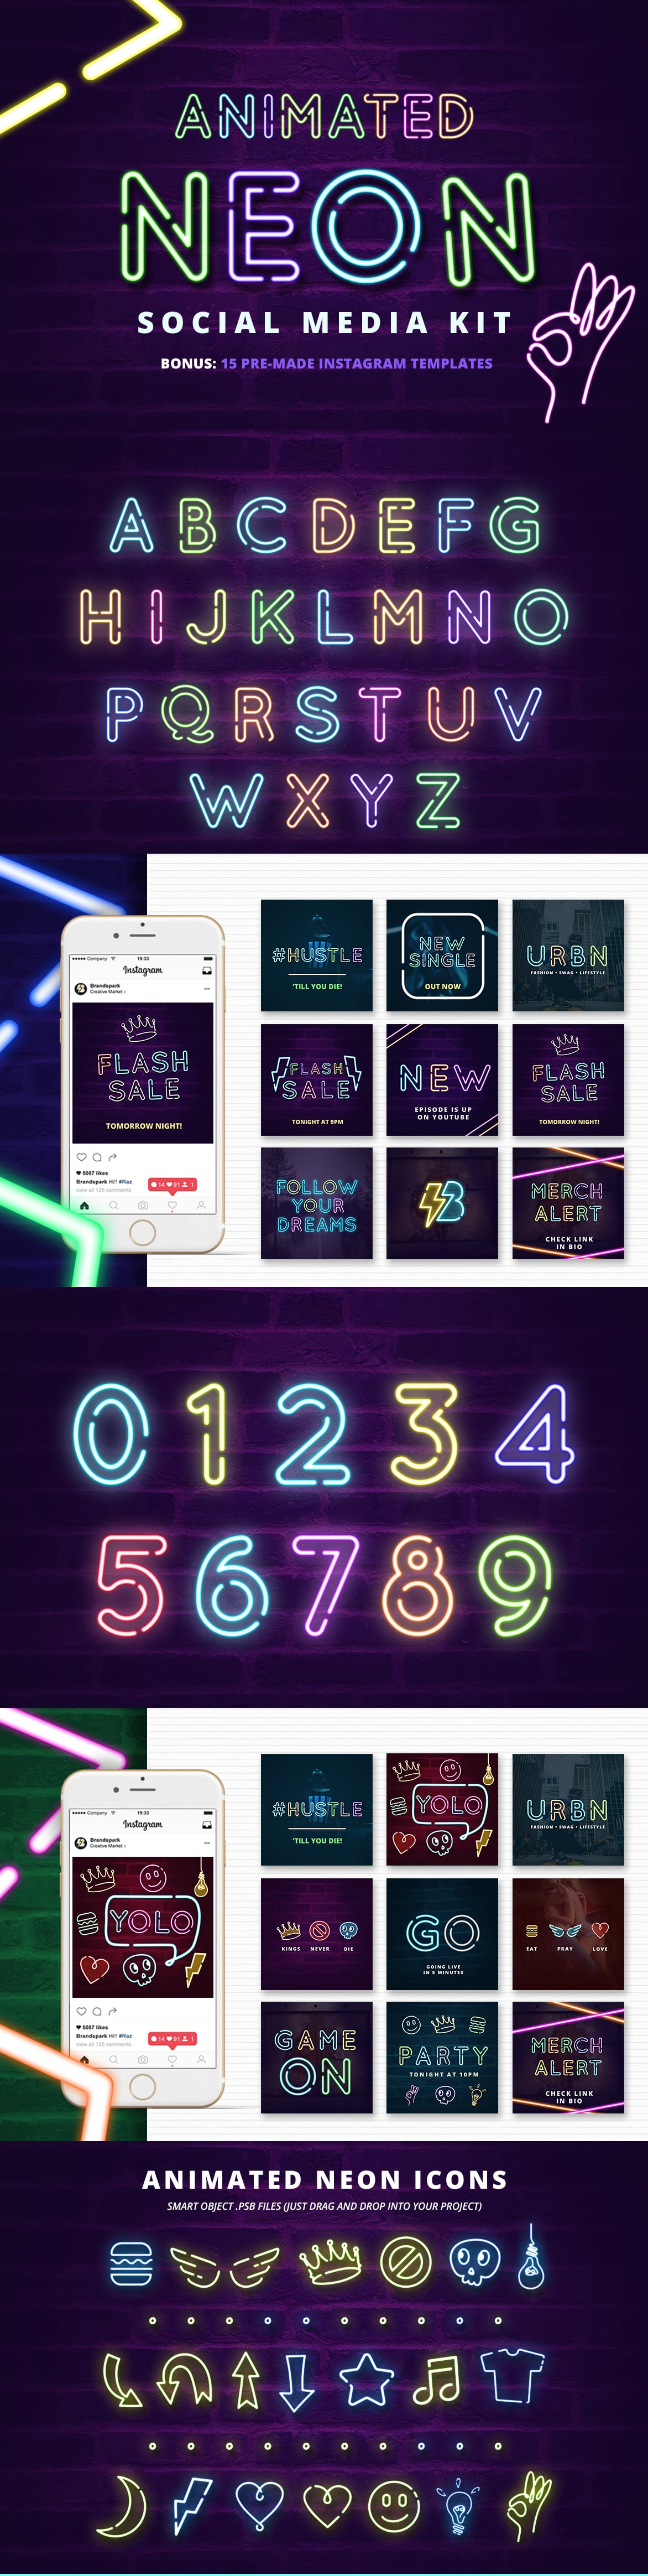 Neon Social Media Kit + Bonus - only $19 - Long Animated Social Media Kit Instagram Templates Entrepreneur Millenial Young Fresh Business Insta Boost Booster